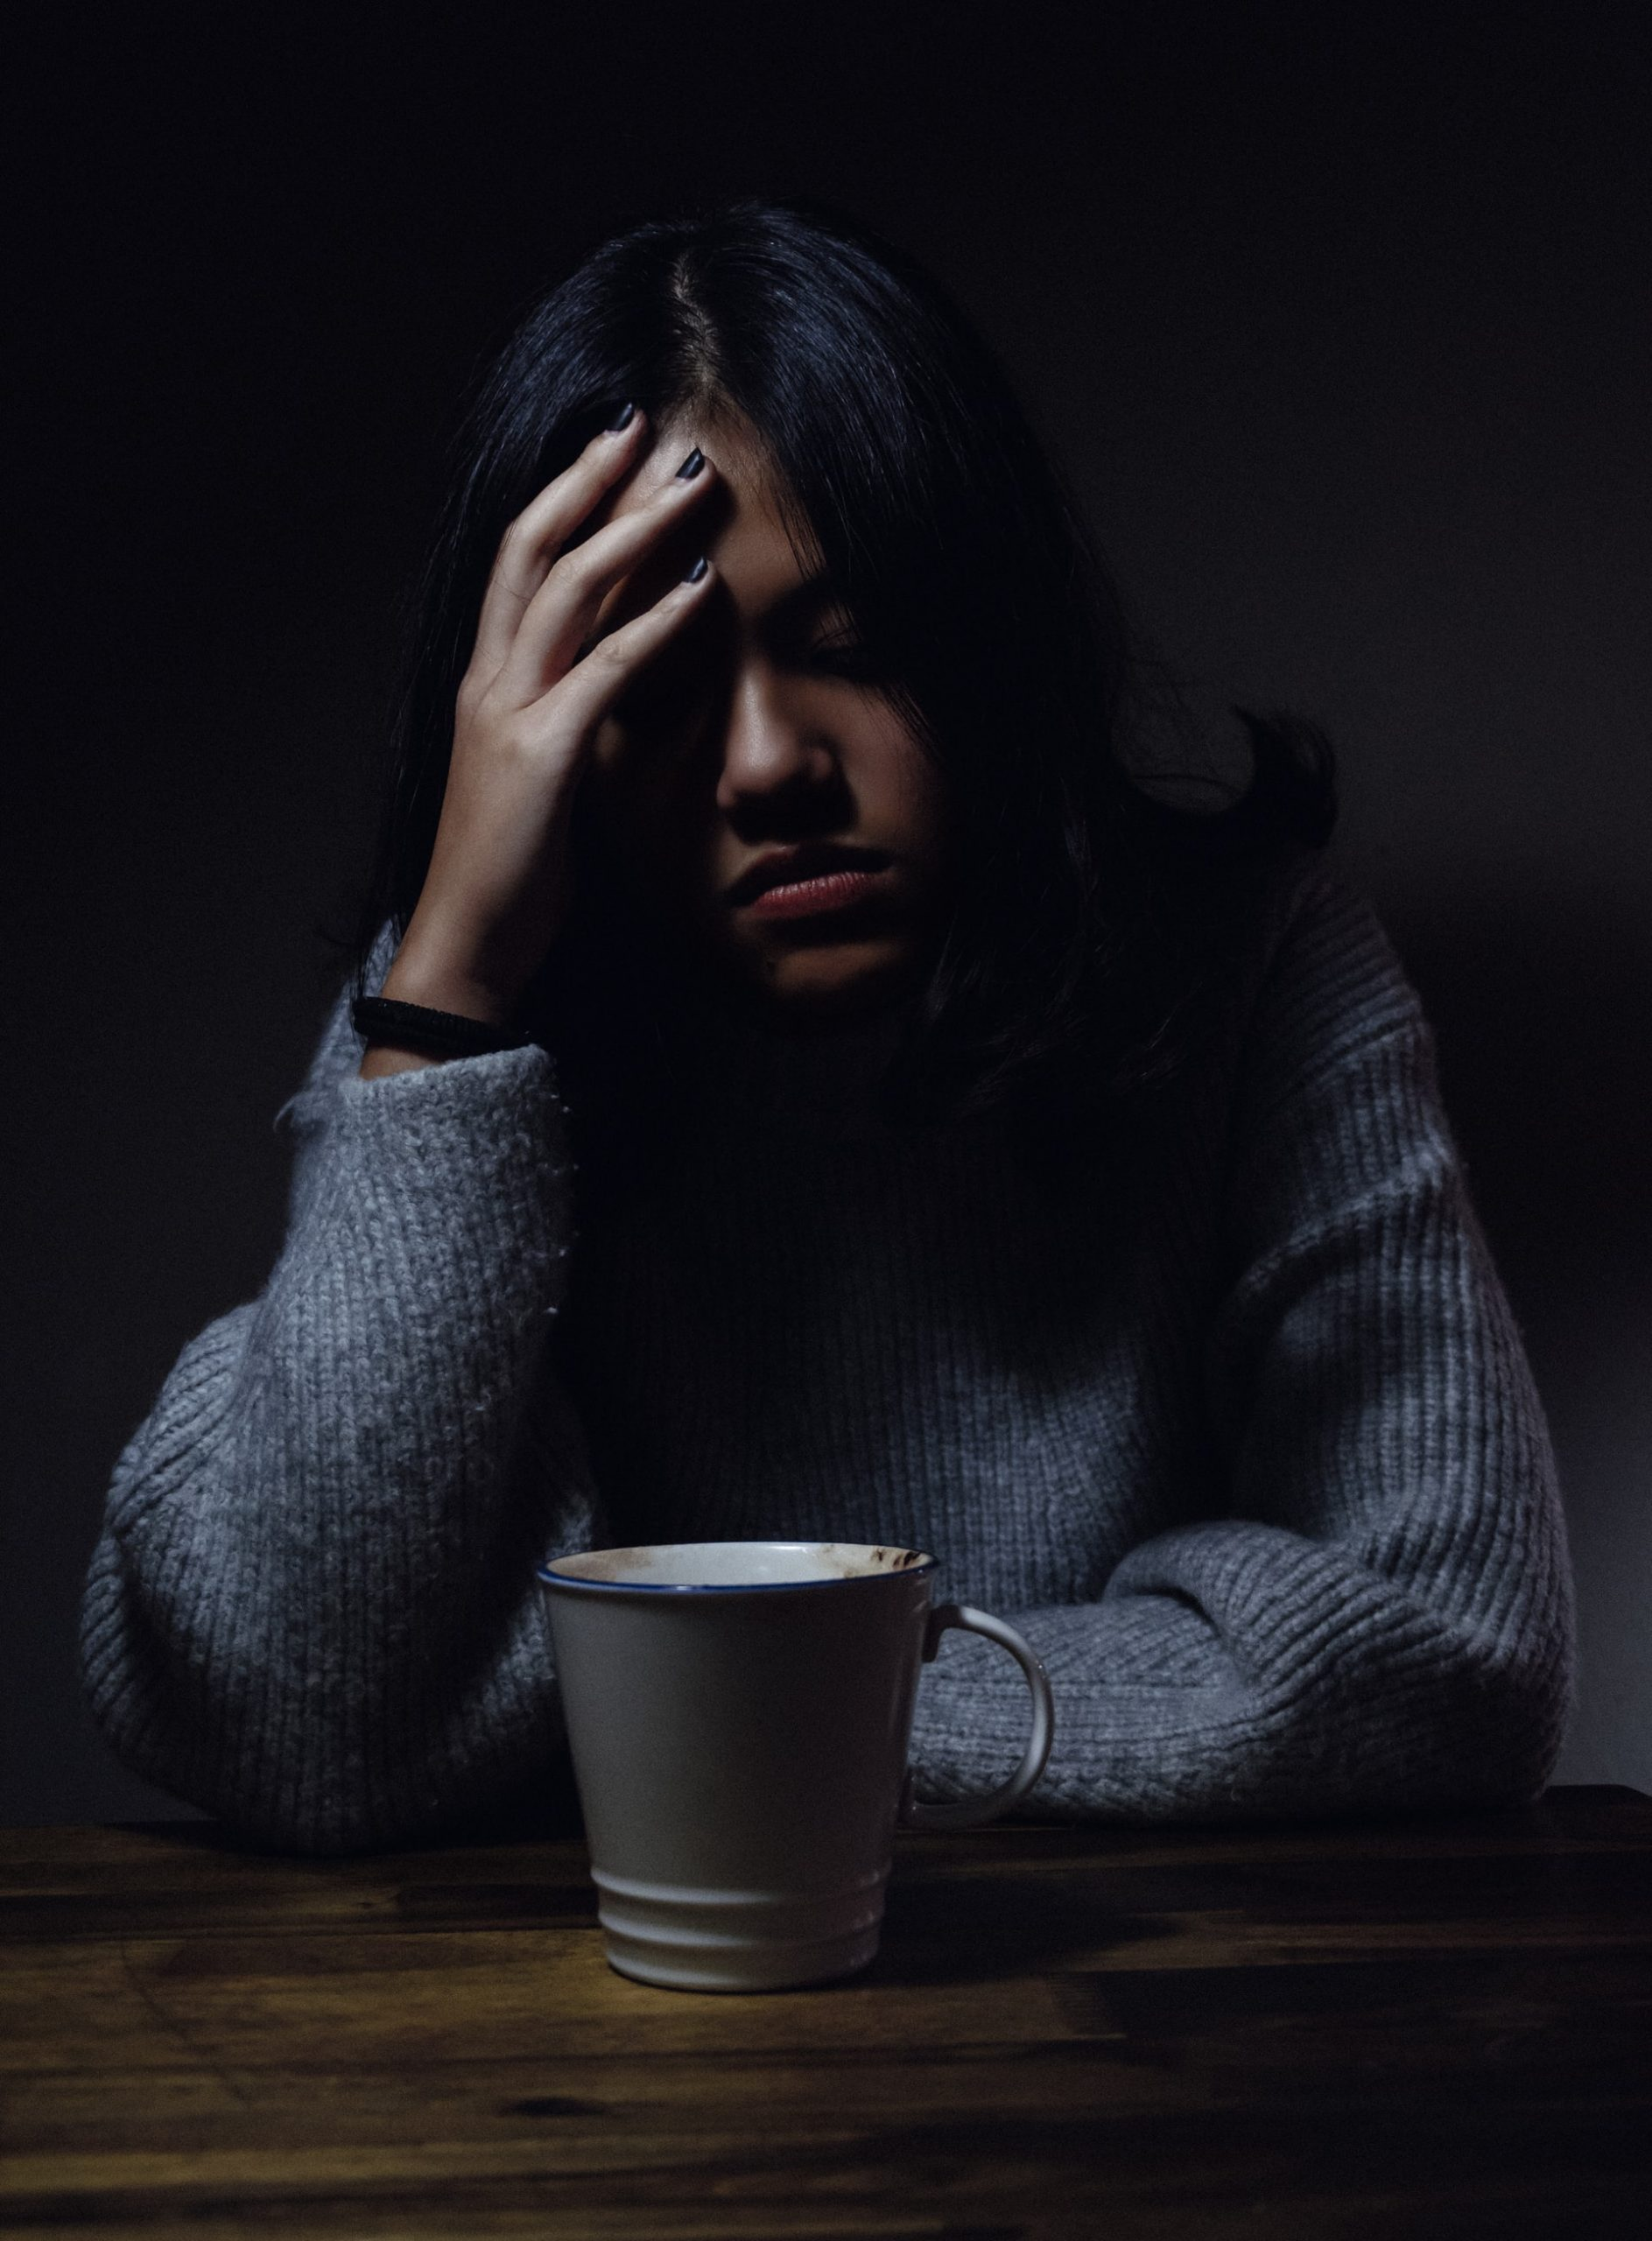 Depressed person with coffee cup